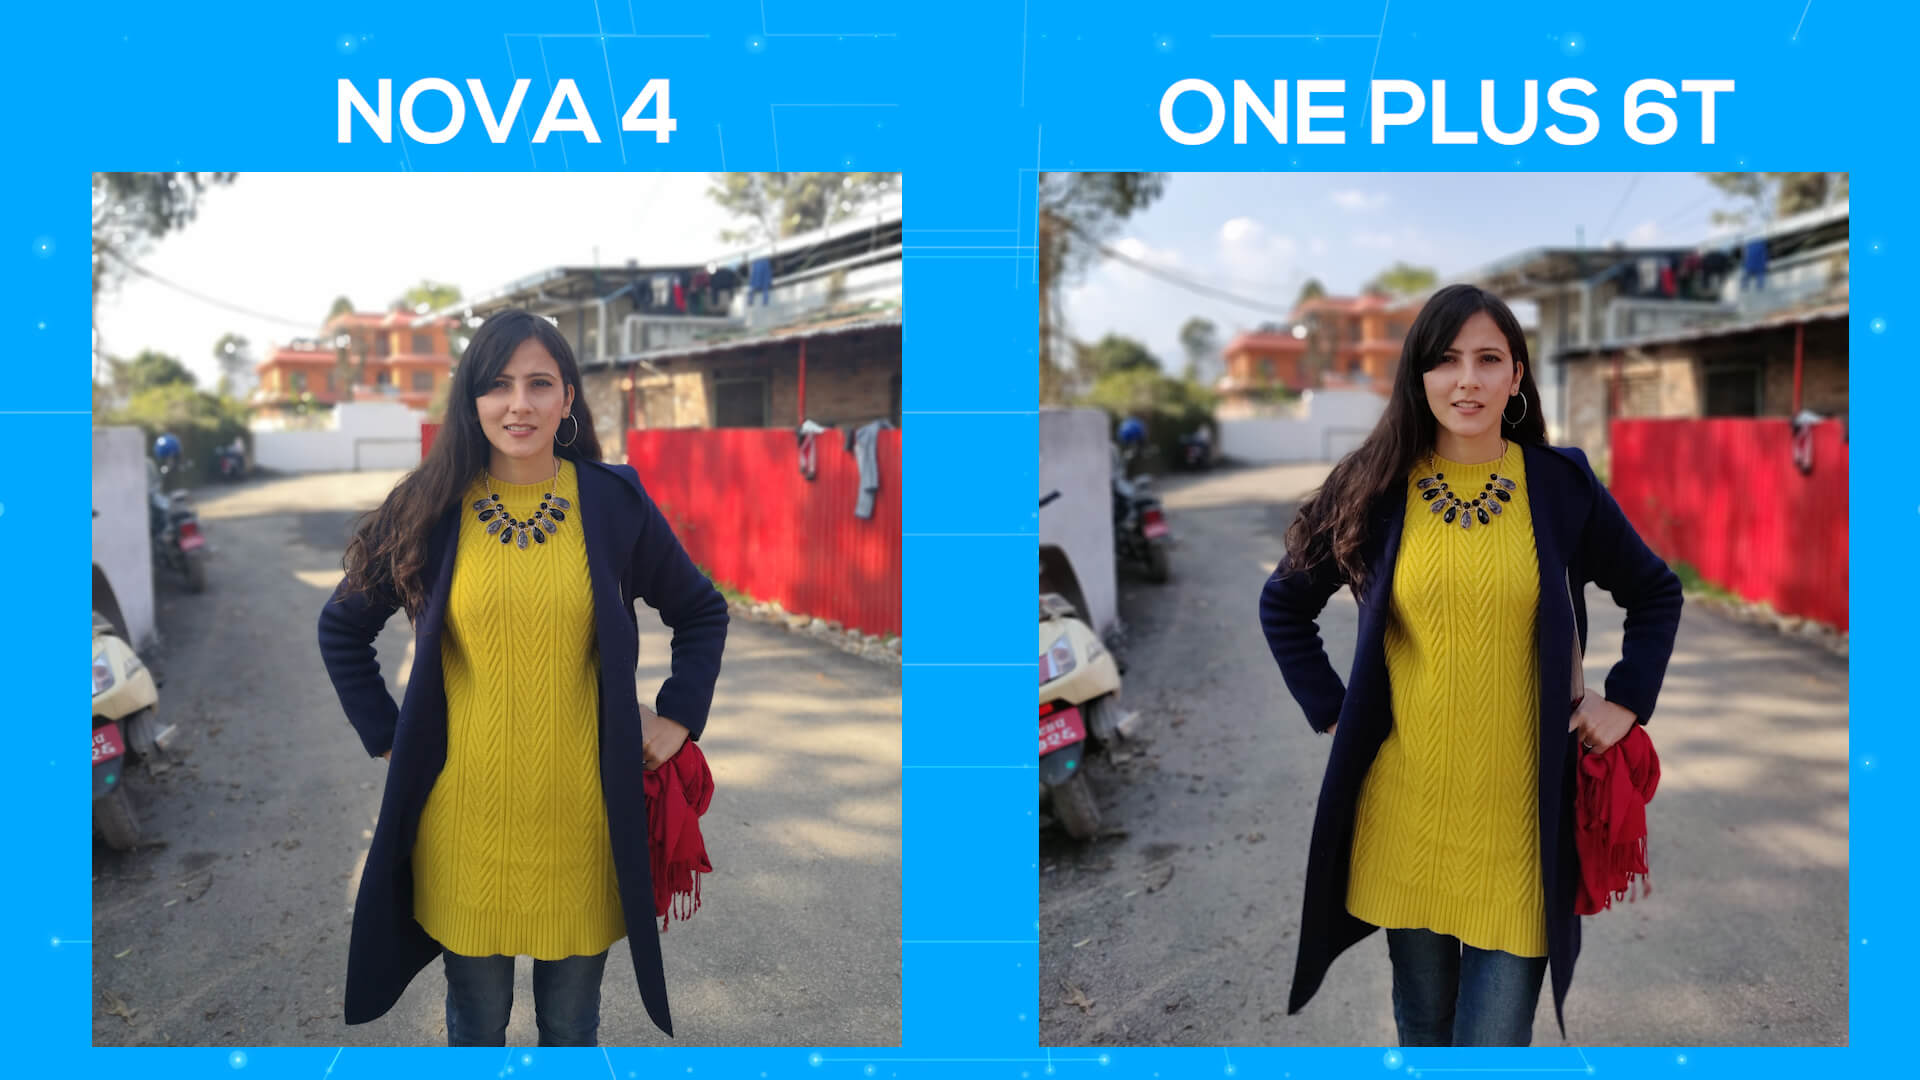 Huawei Nova 4 vs OnePlus 6T camera comparison day portrait